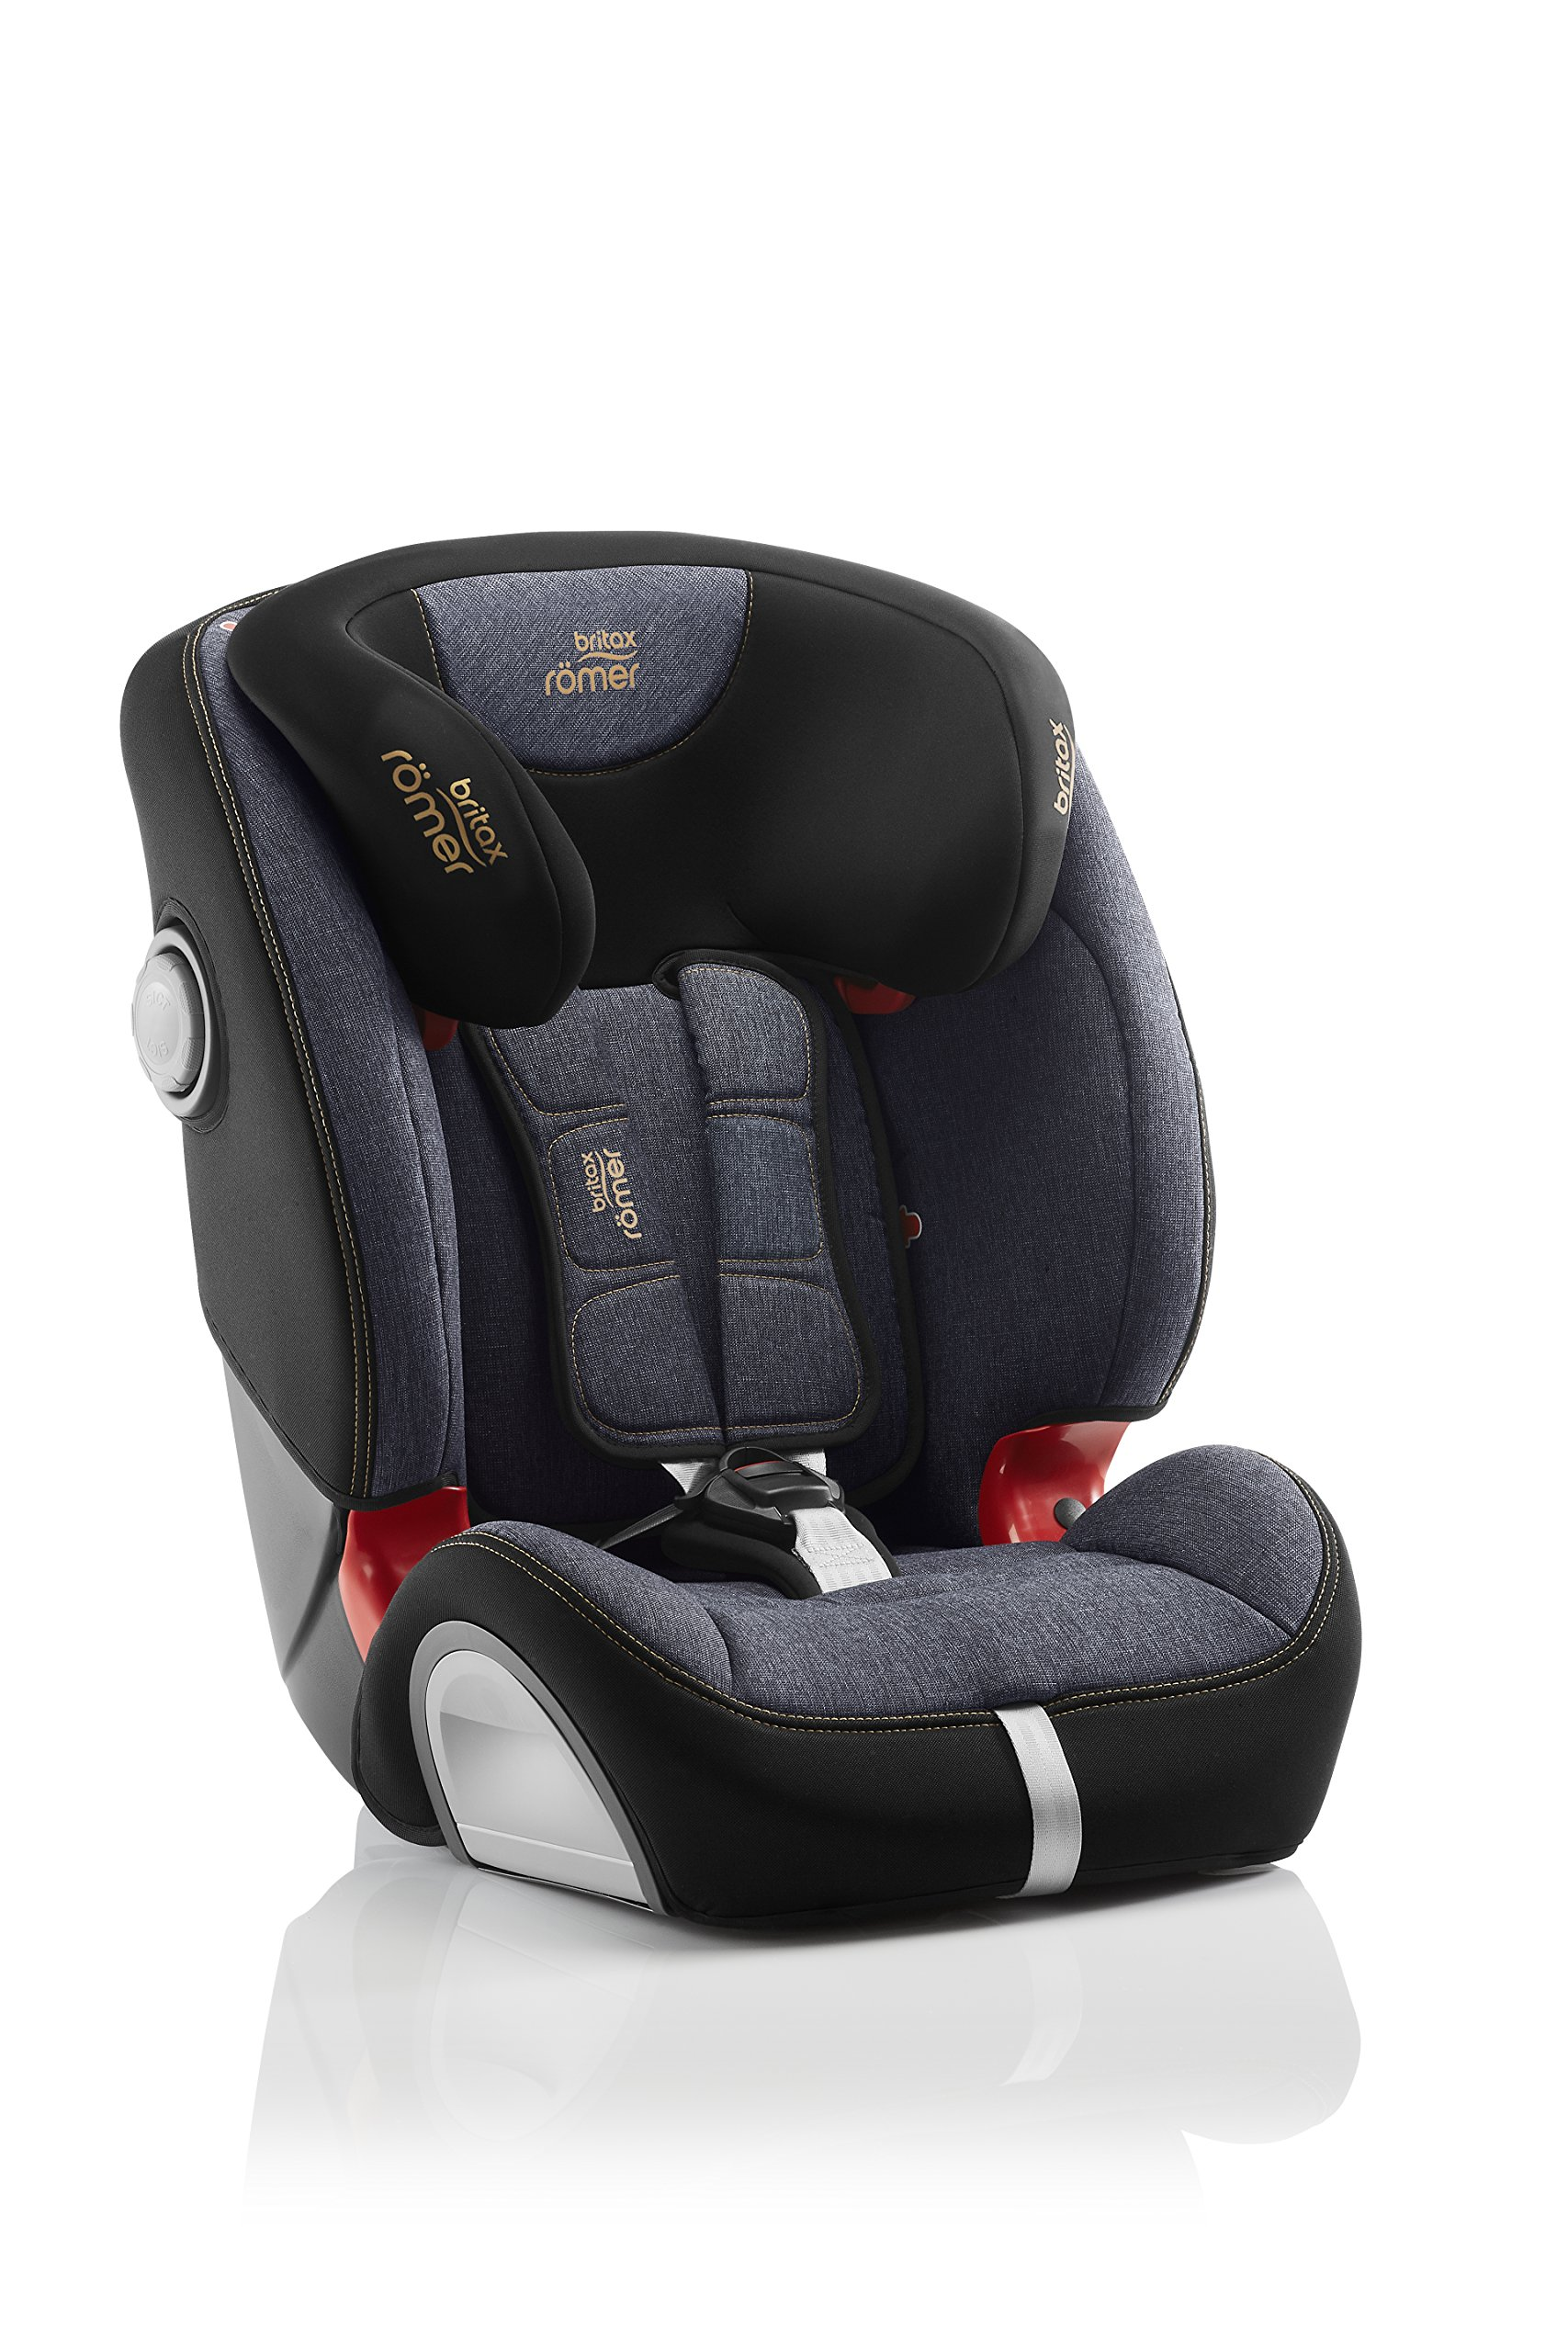 Britax Römer EVOLVA 1-2-3 SL SICT Group 1-2-3 (9-36kg) Car Seat - Blue Marble  This EVOLVA 1-2-3 SL SICT will come in a Blue Marble design cover which is made from a more premium fabric with extra detailing Enhanced Side Impact Protection (SICT) minimises the force of an impact in a side collision CLICK & SAFE audible harness system for that extra reassurance when securing your child in the seat 3